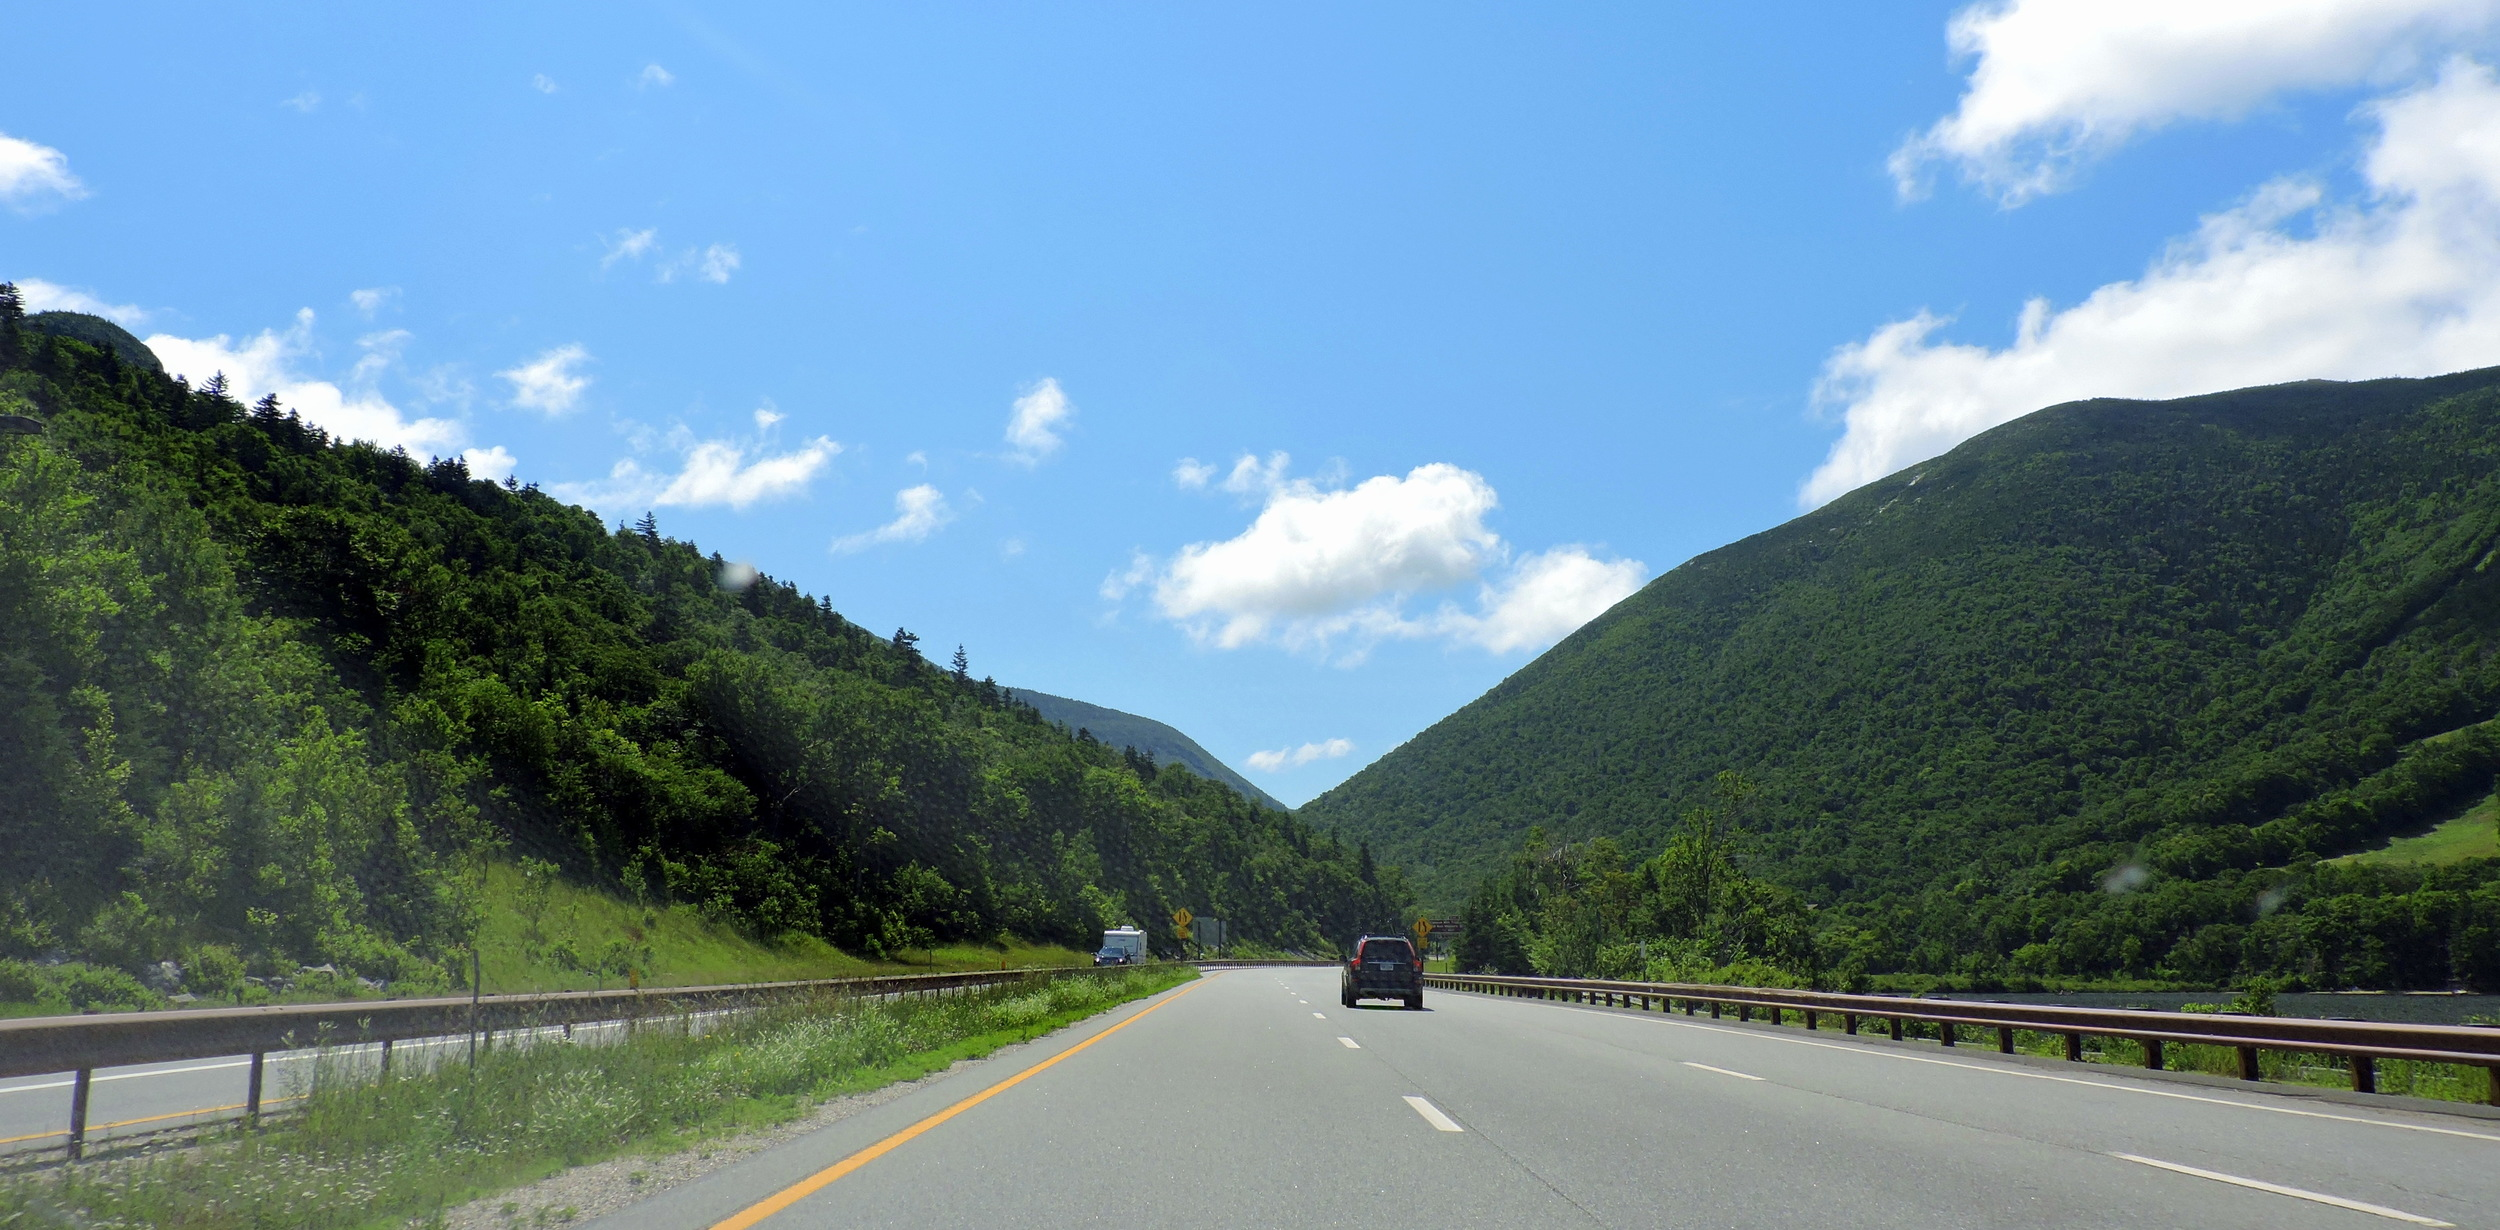 The largest cities along I-93 are Manchester, NH and Boston, MA. It also runs through the NH state capital, Concord.